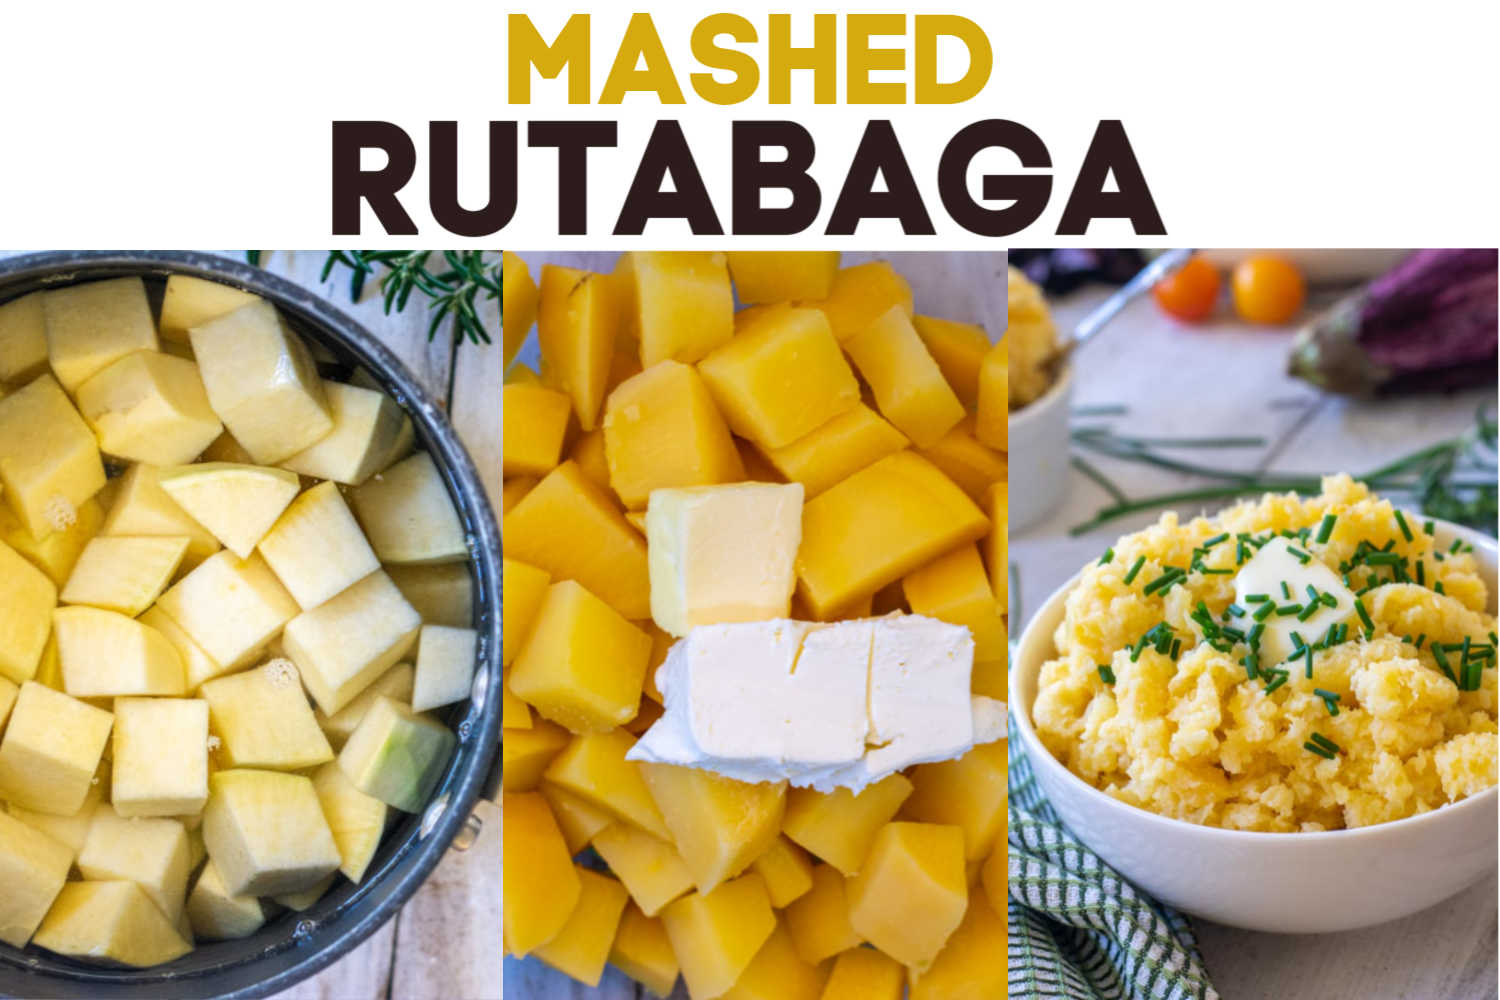 Three images showing the steps to make mashed rutabaga